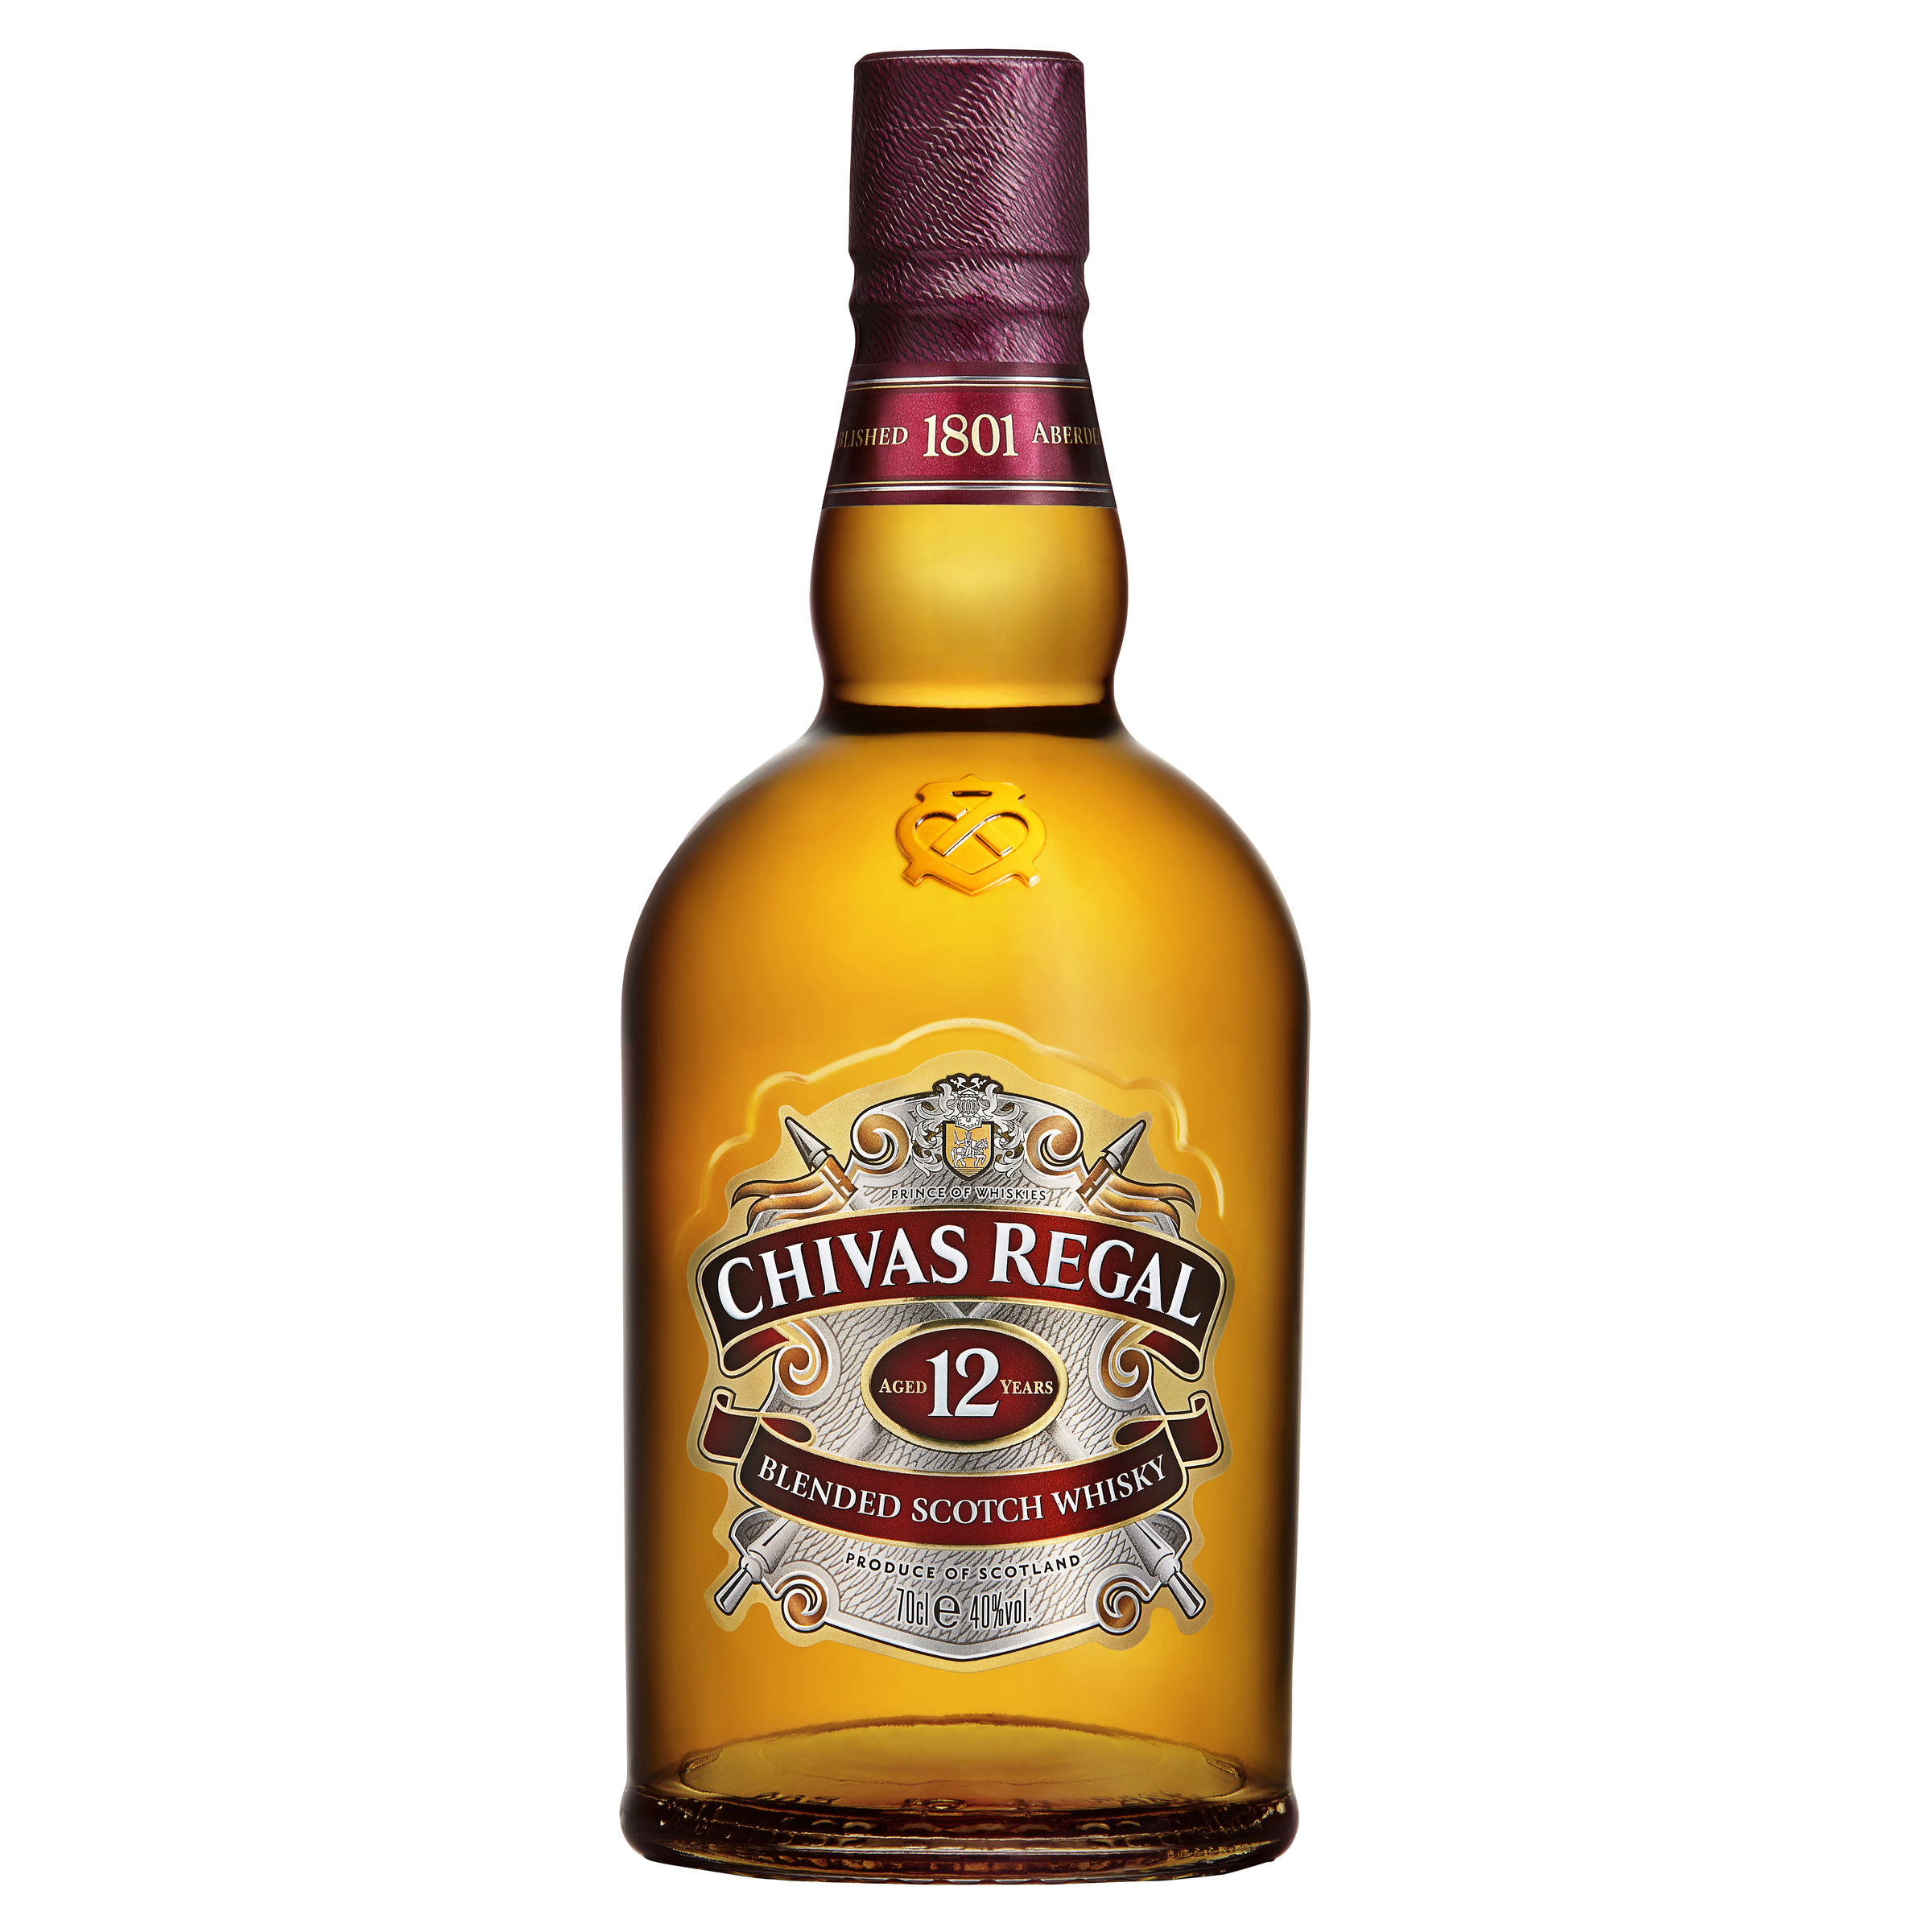 CHIVAS REGAL 12YEAR OLD SCOTCH